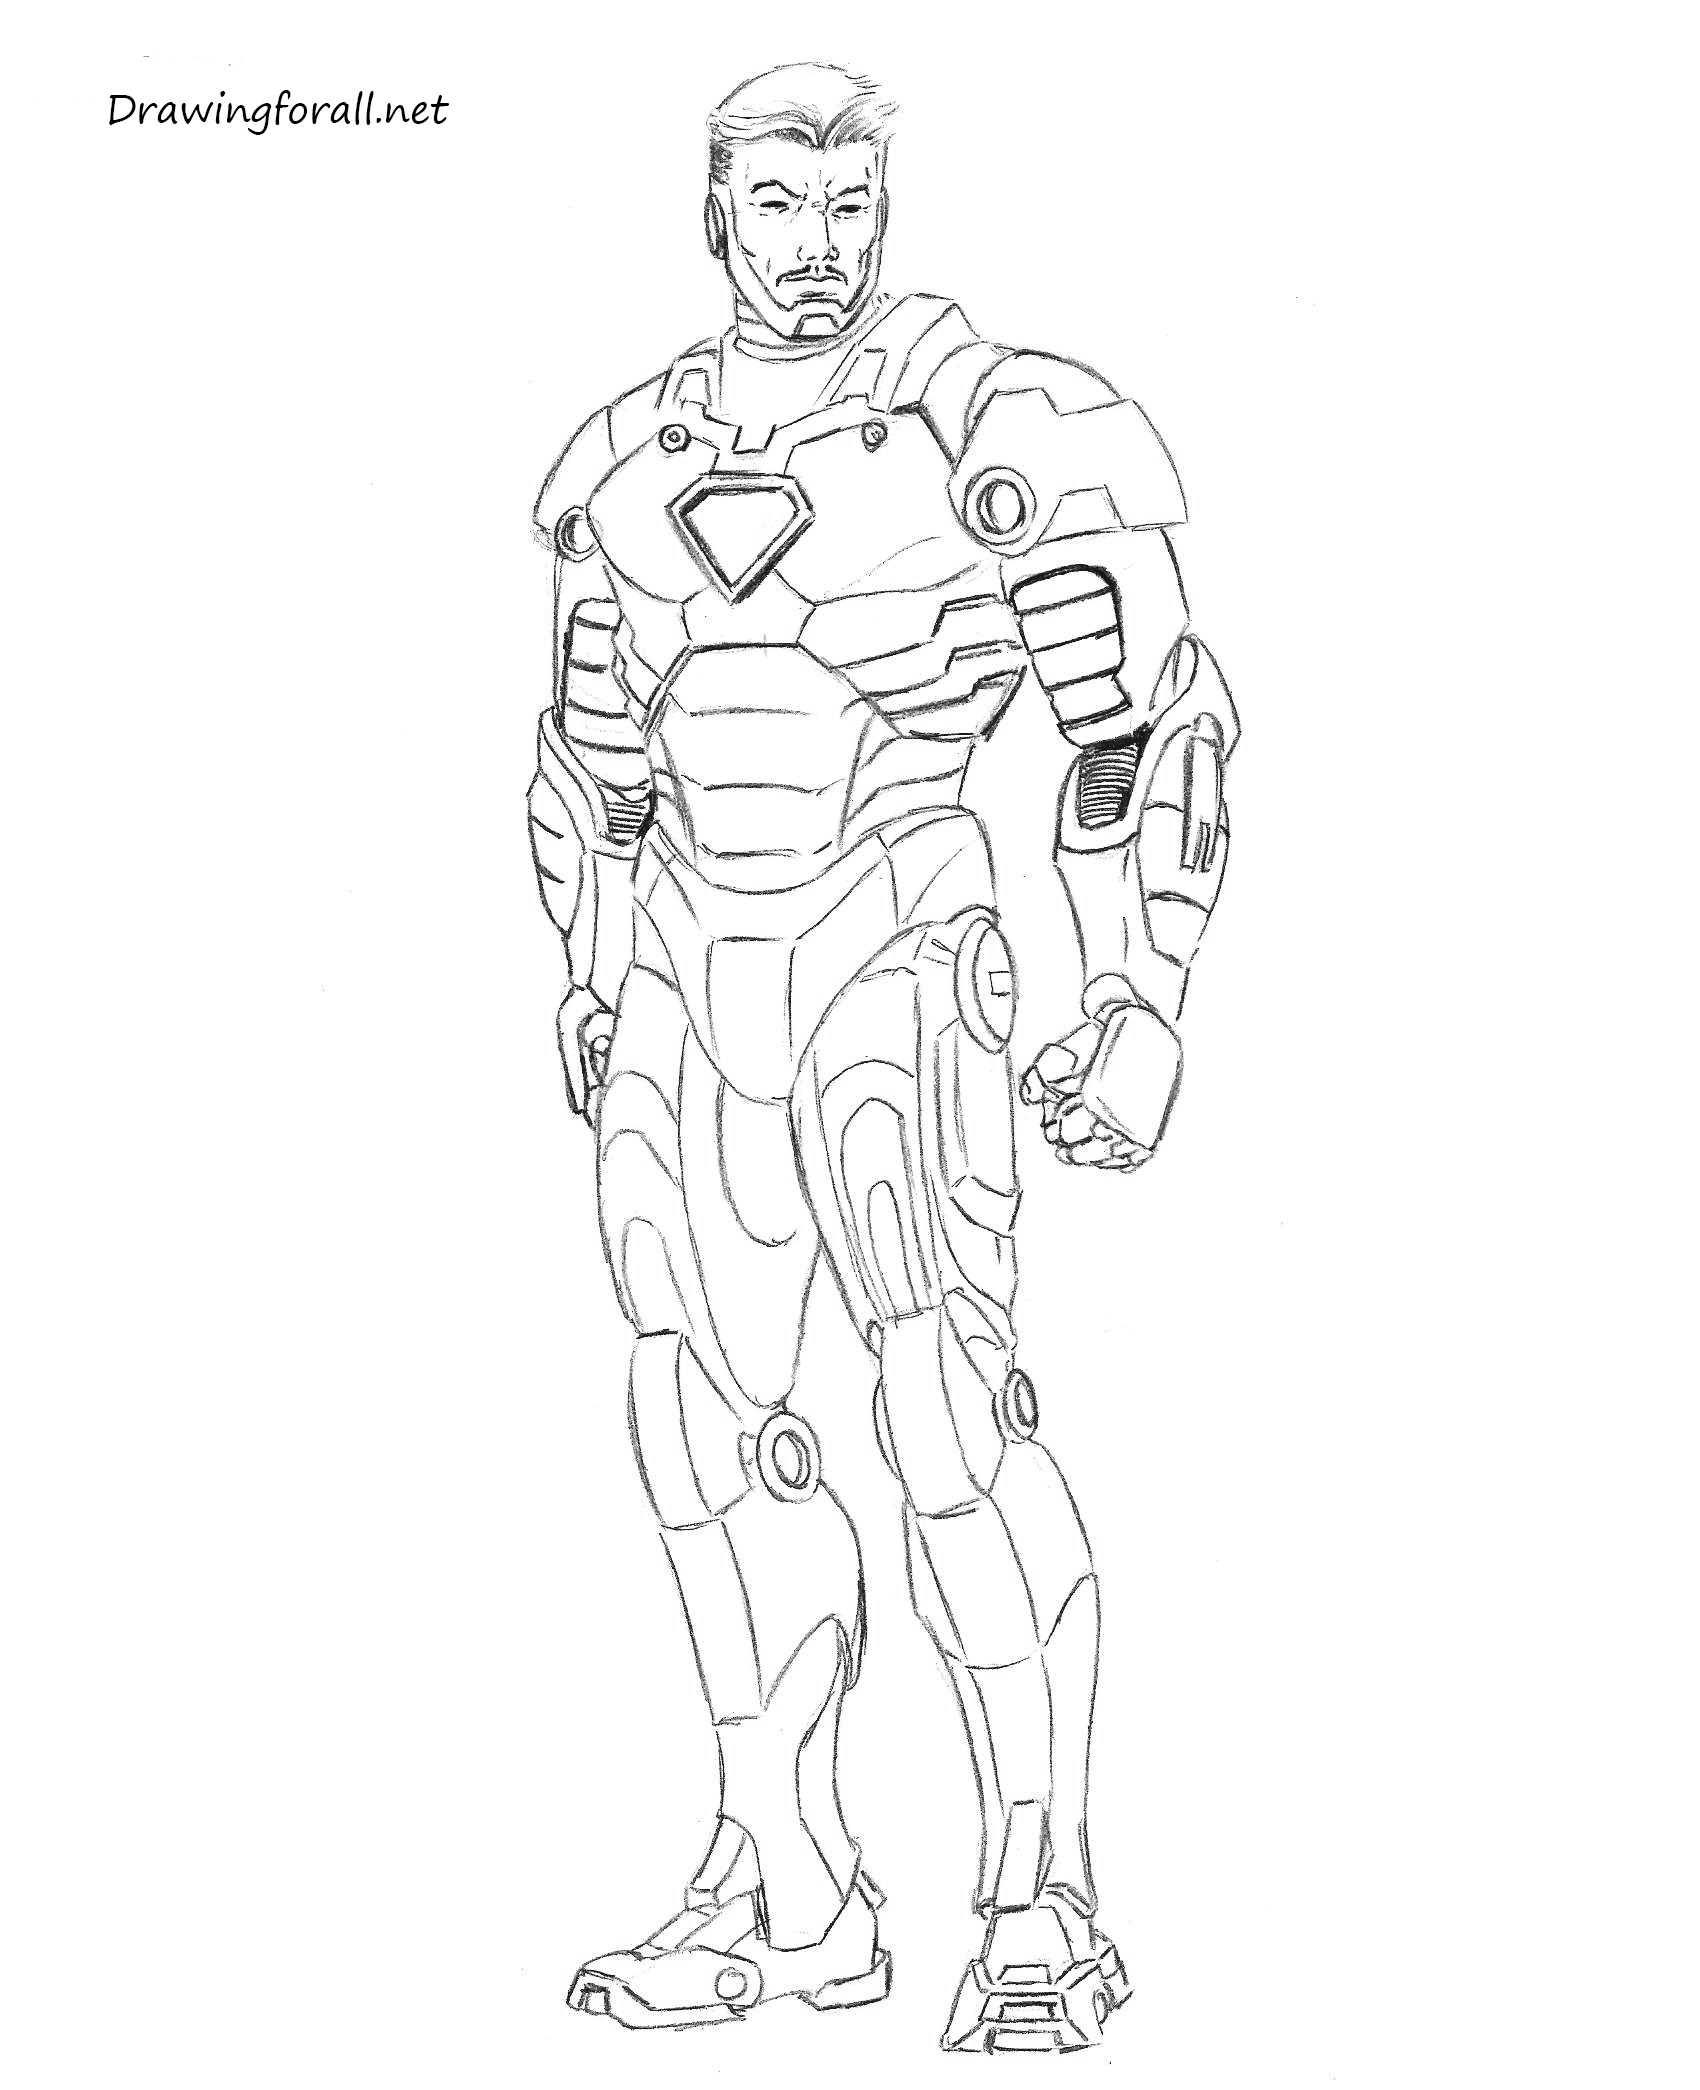 how to draw ironman step by step how to draw iron man step by step drawingforallnet draw to how step ironman by step